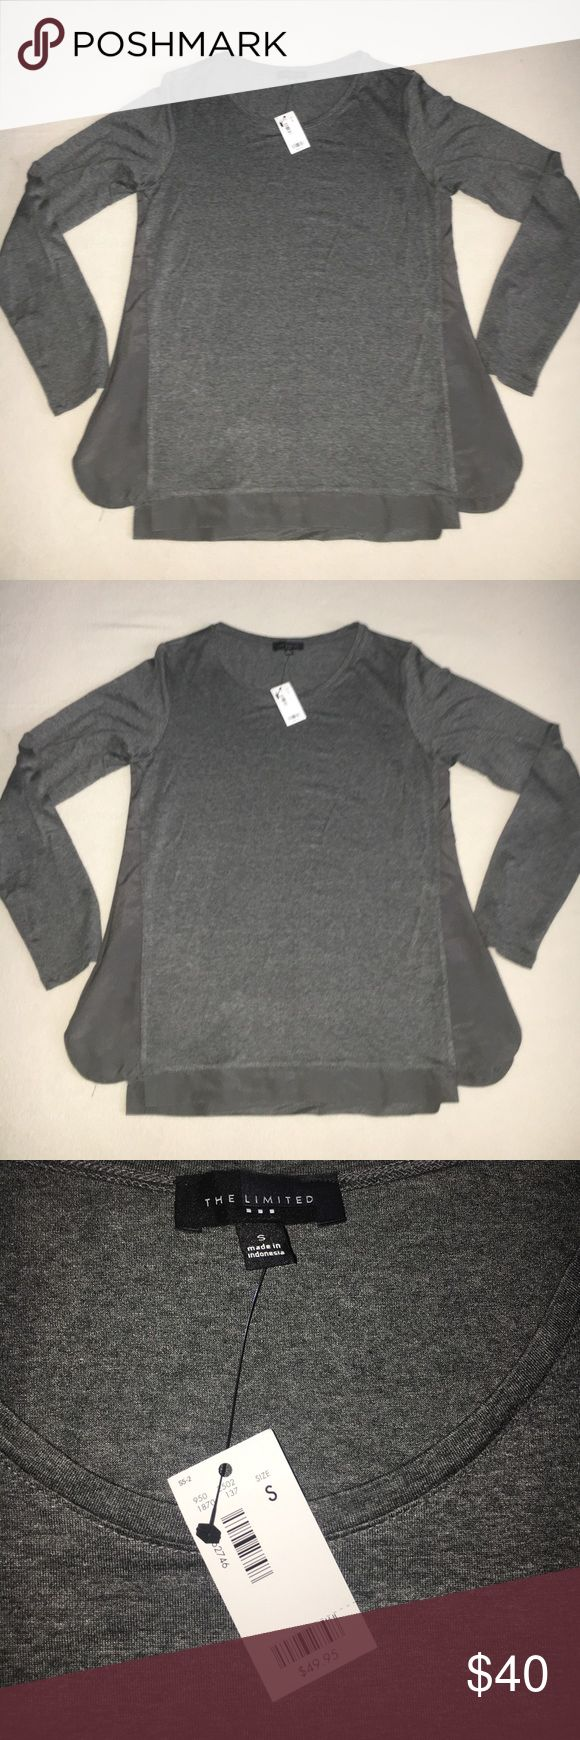 Limited Grey Long Sleeve Top Limited Grey long sleeve top - Spandex/Rayon with Poleyster detailing to sides and bottom The Limited Tops Blouses